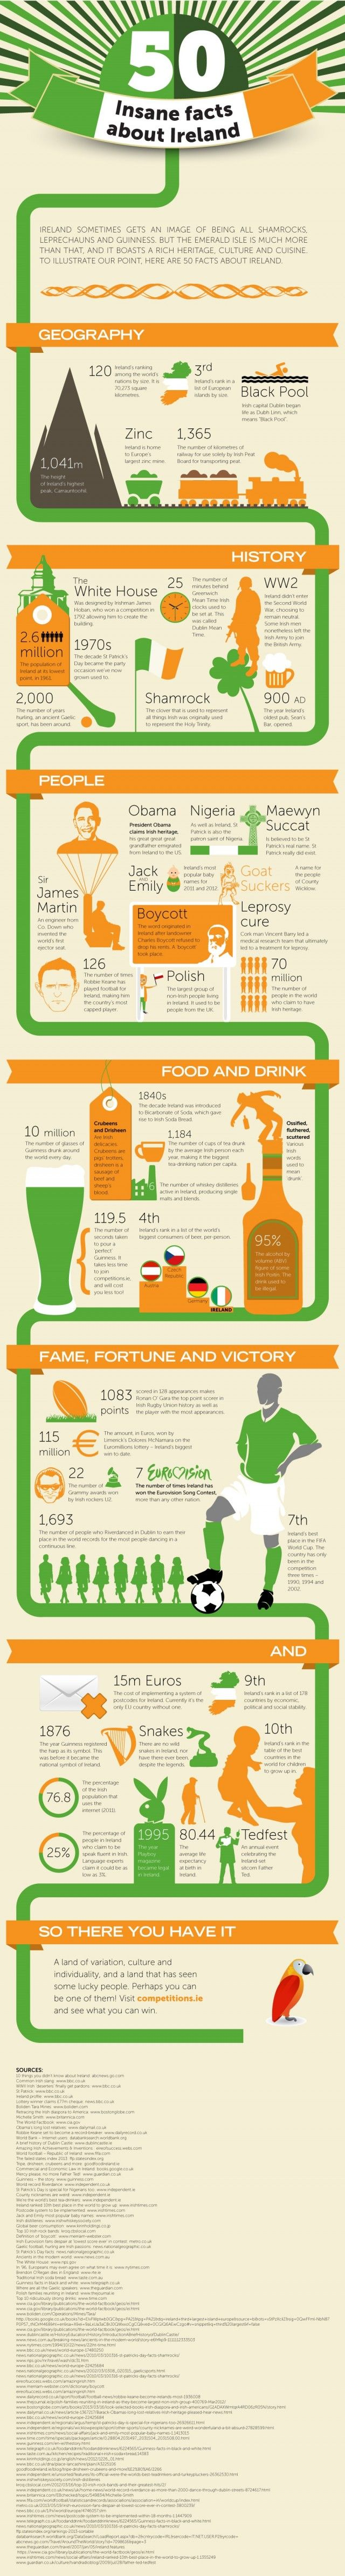 50 Insane Facts About Ireland #infographic #infografía